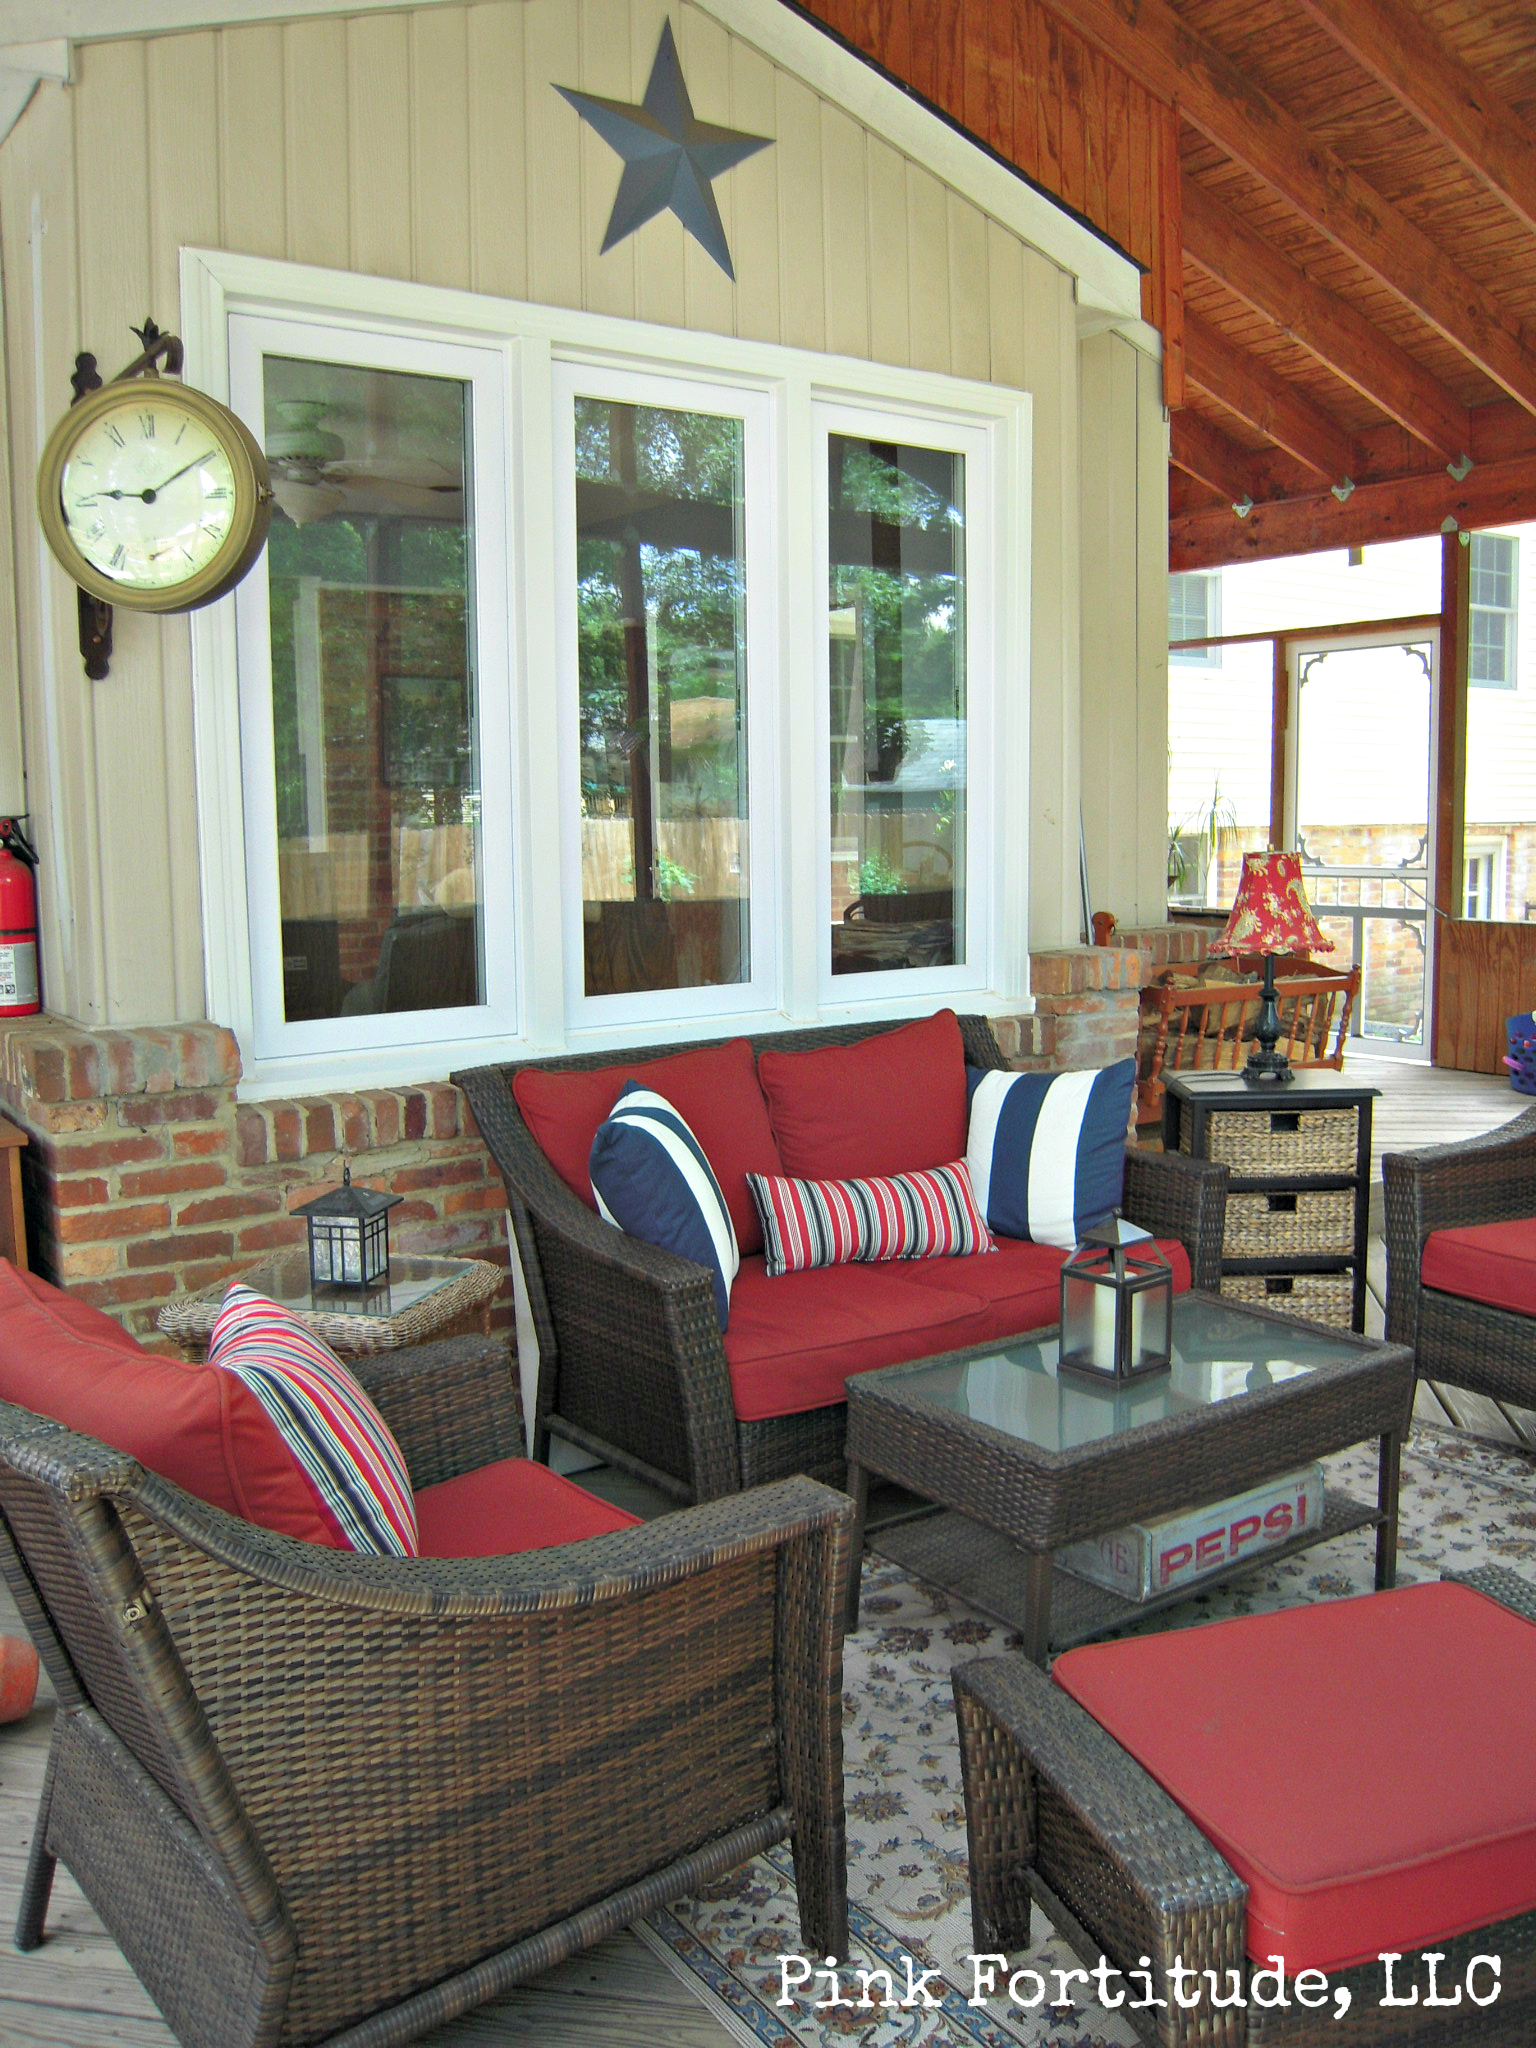 Relaxing Porch Oasis Pink Fortitude Llc